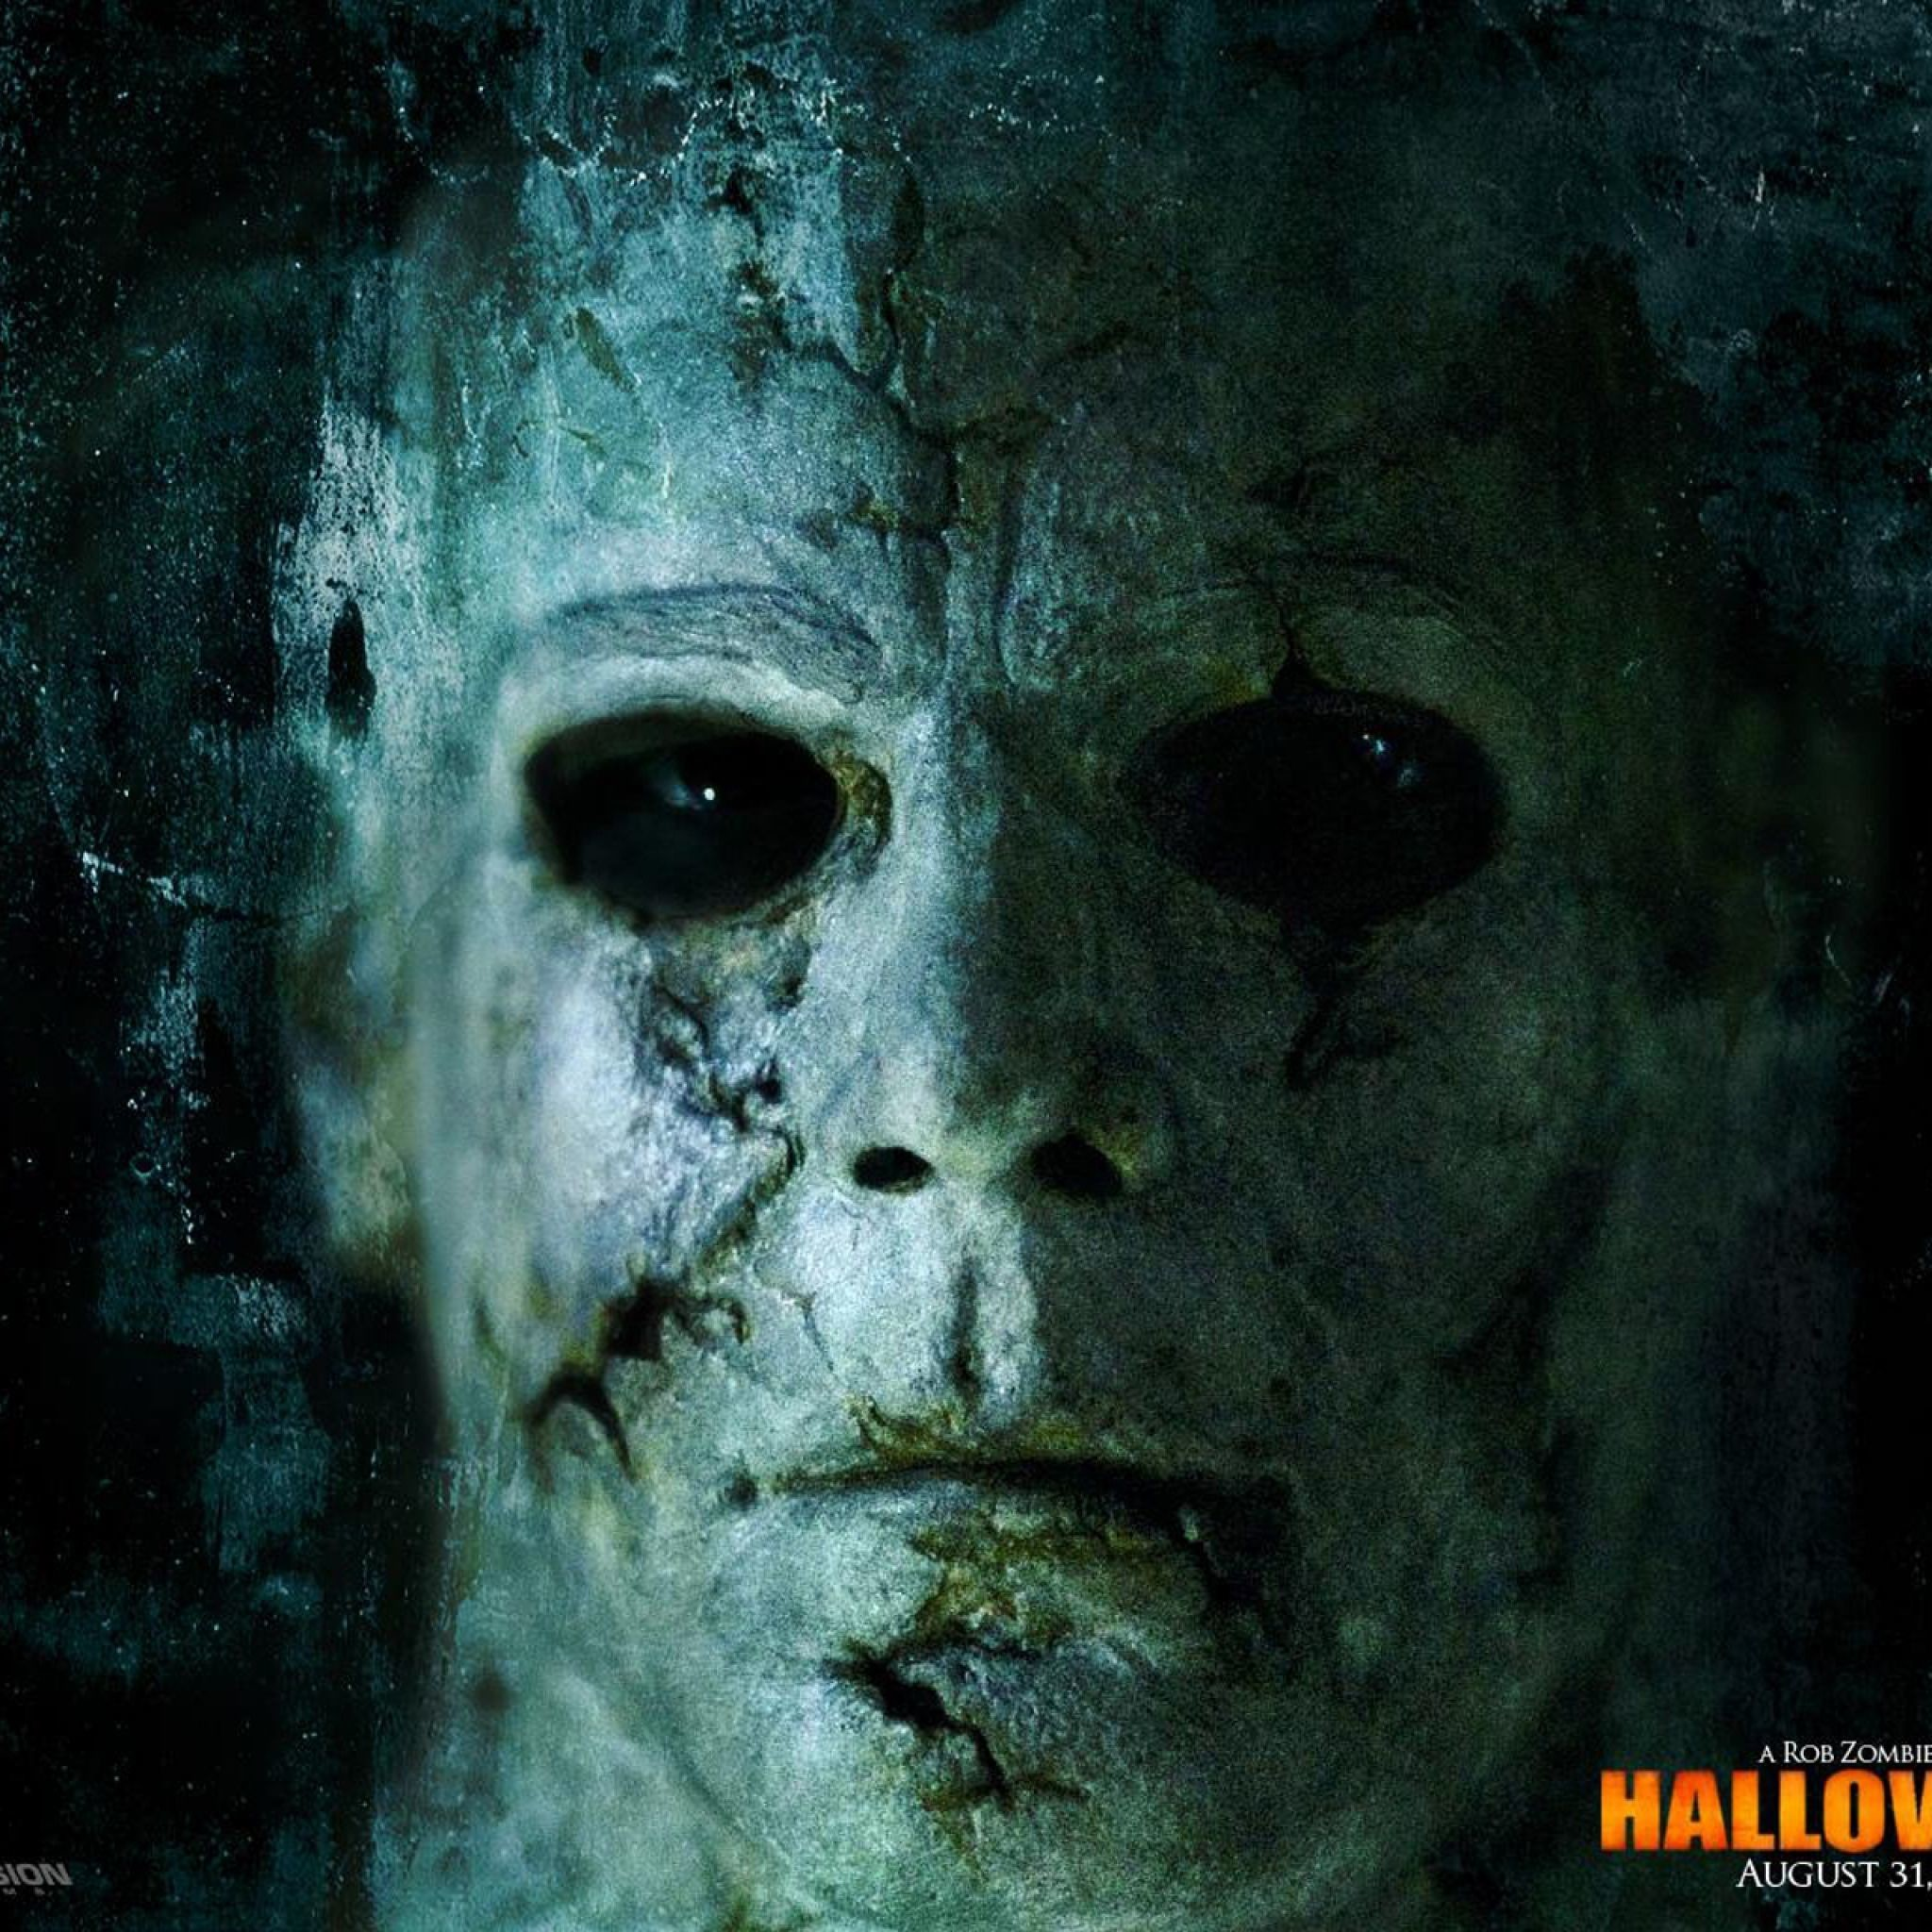 rob zombie halloween michael myers wallpaper ·①